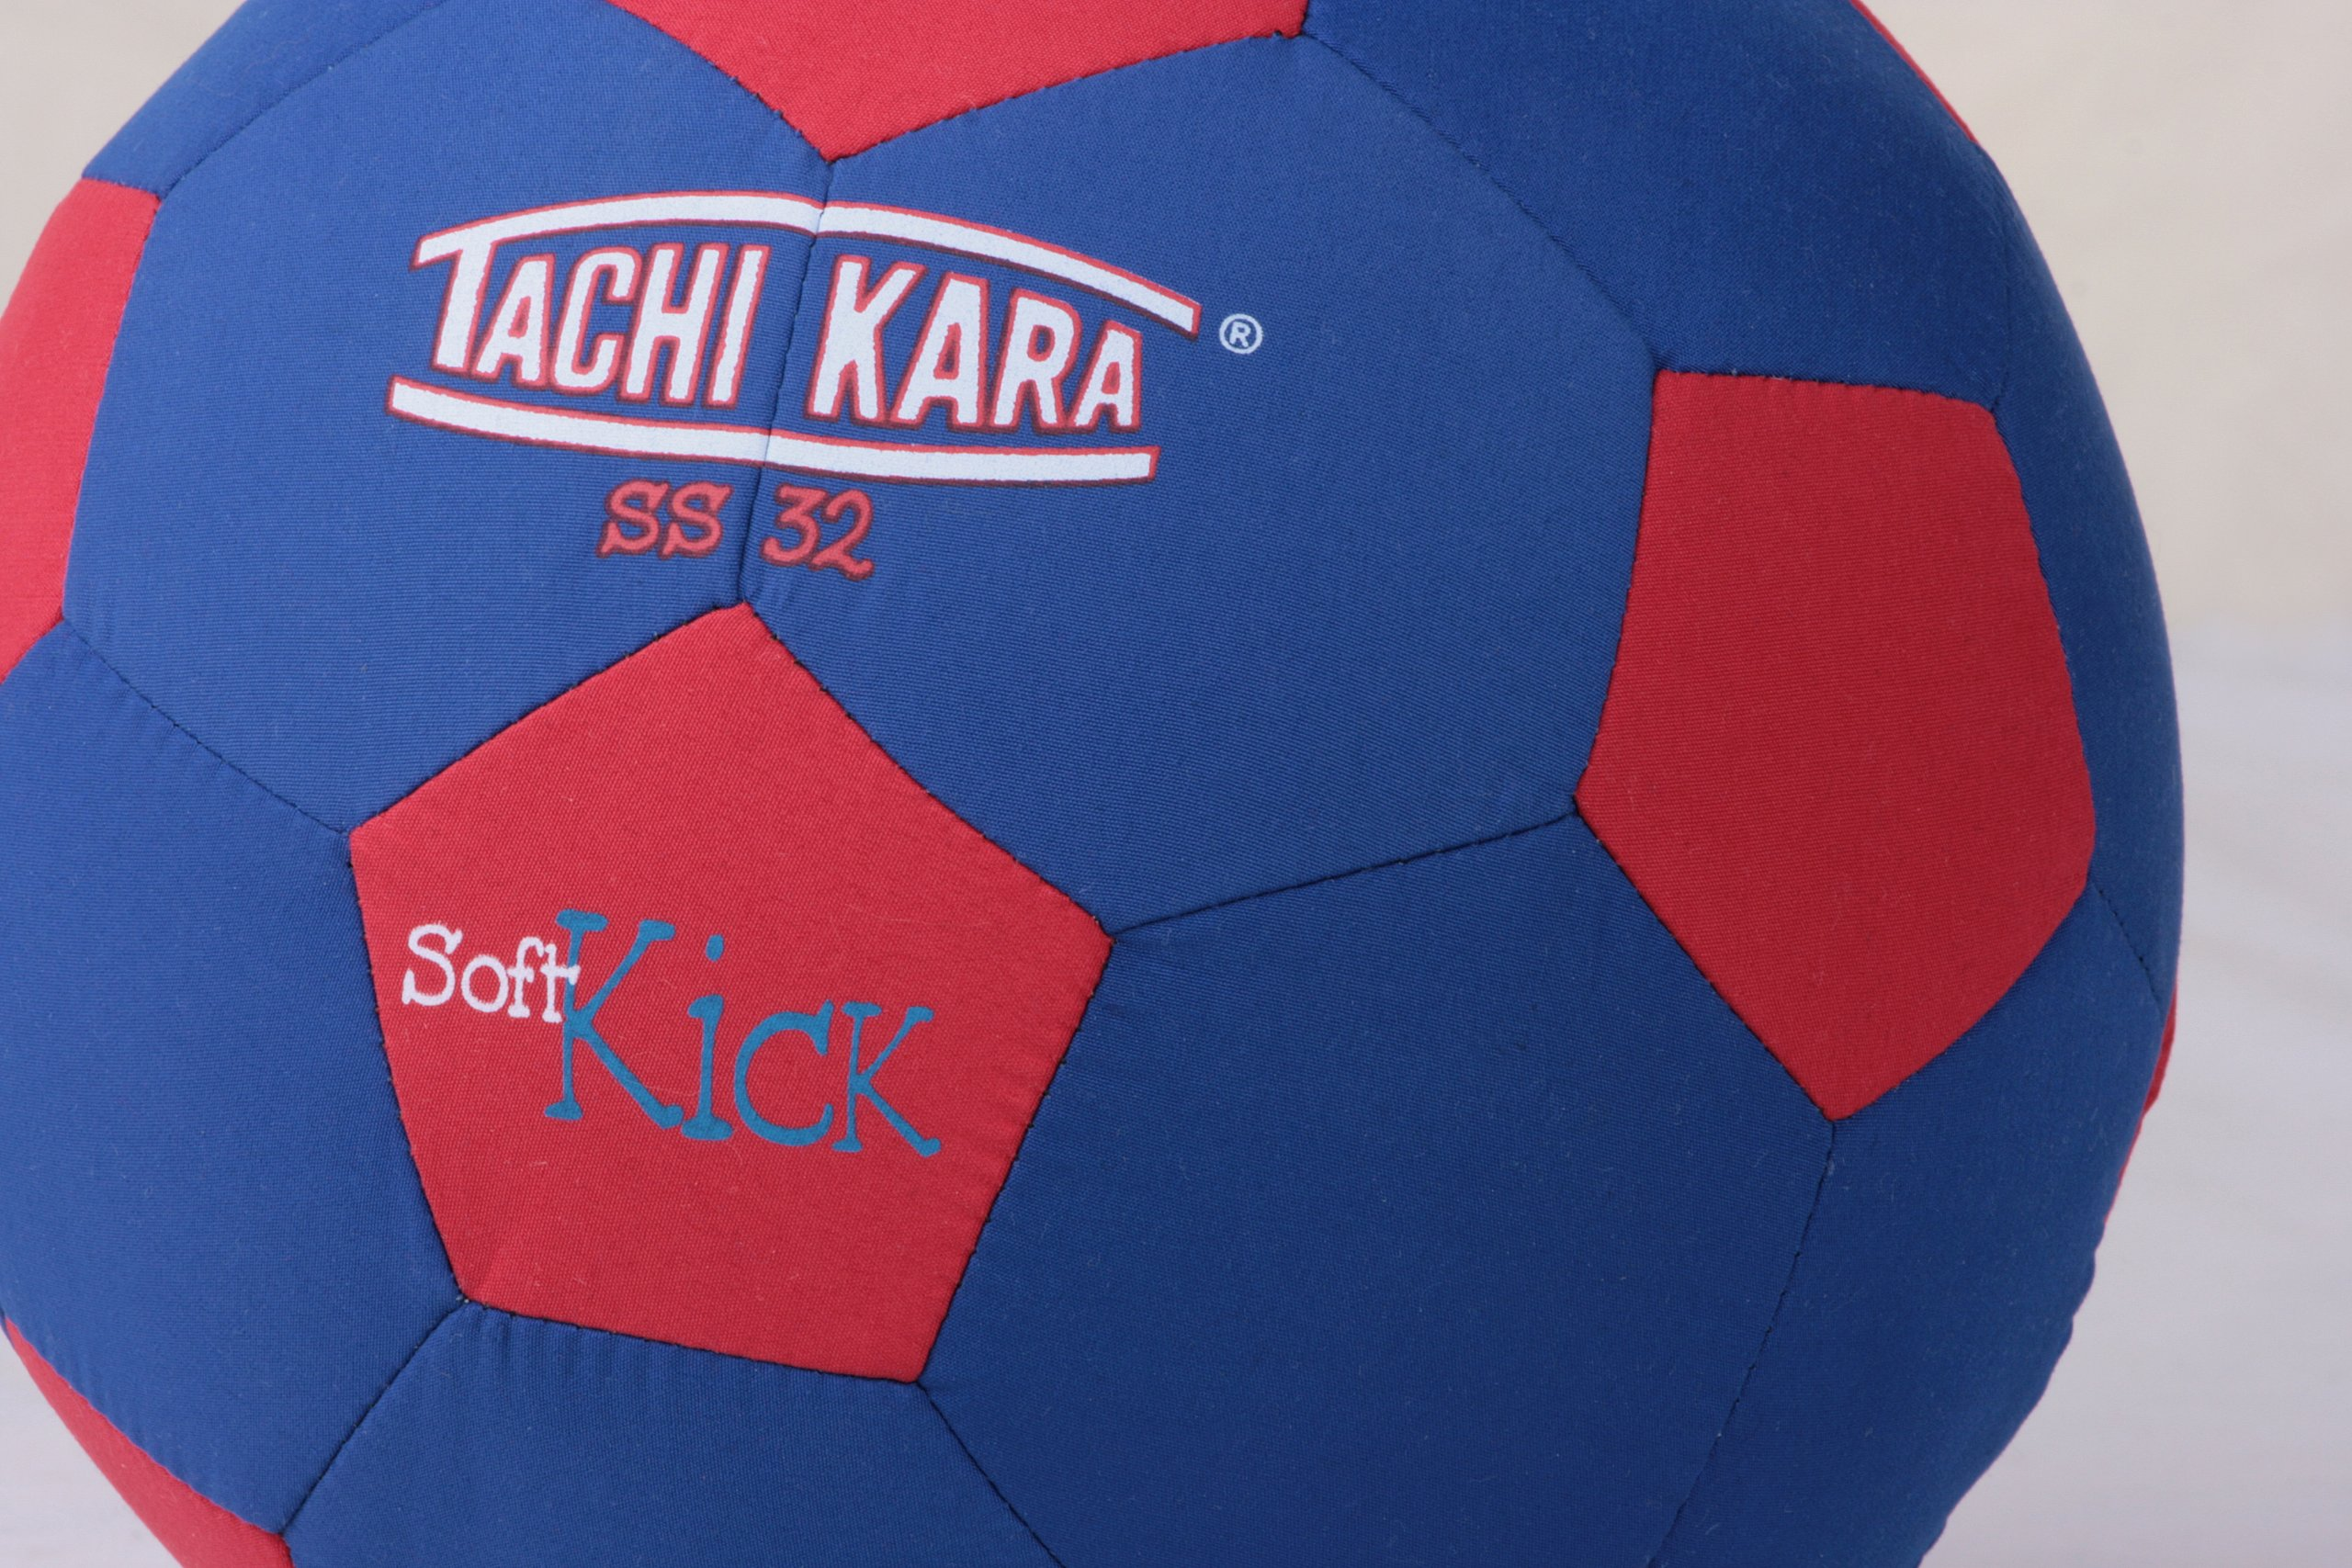 Tachikara SS32 Soft Kick Fabric Soccer Ball, Blue/Red by Tachikara